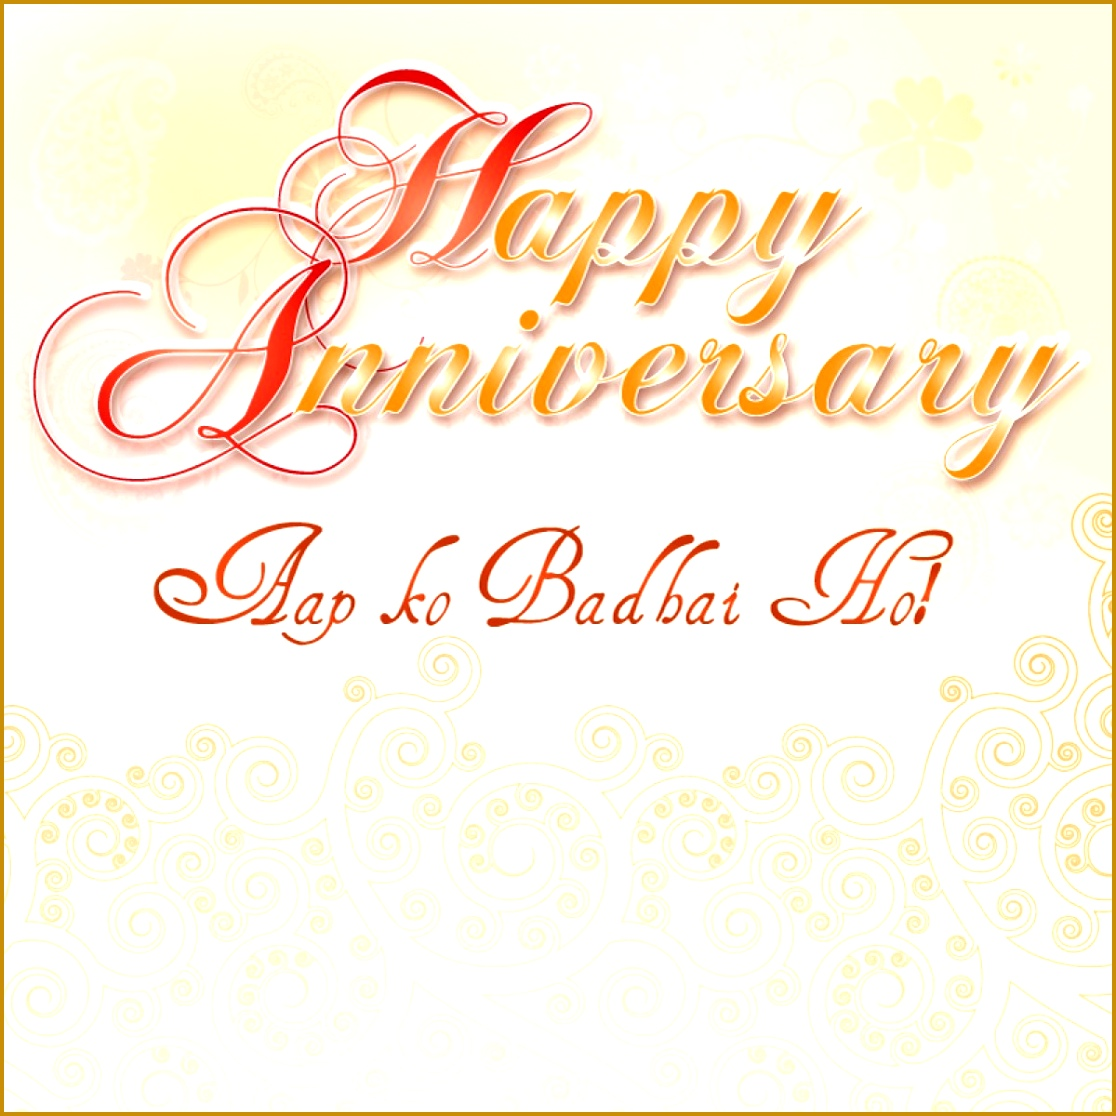 happy marriage anniversary greeting 11161116